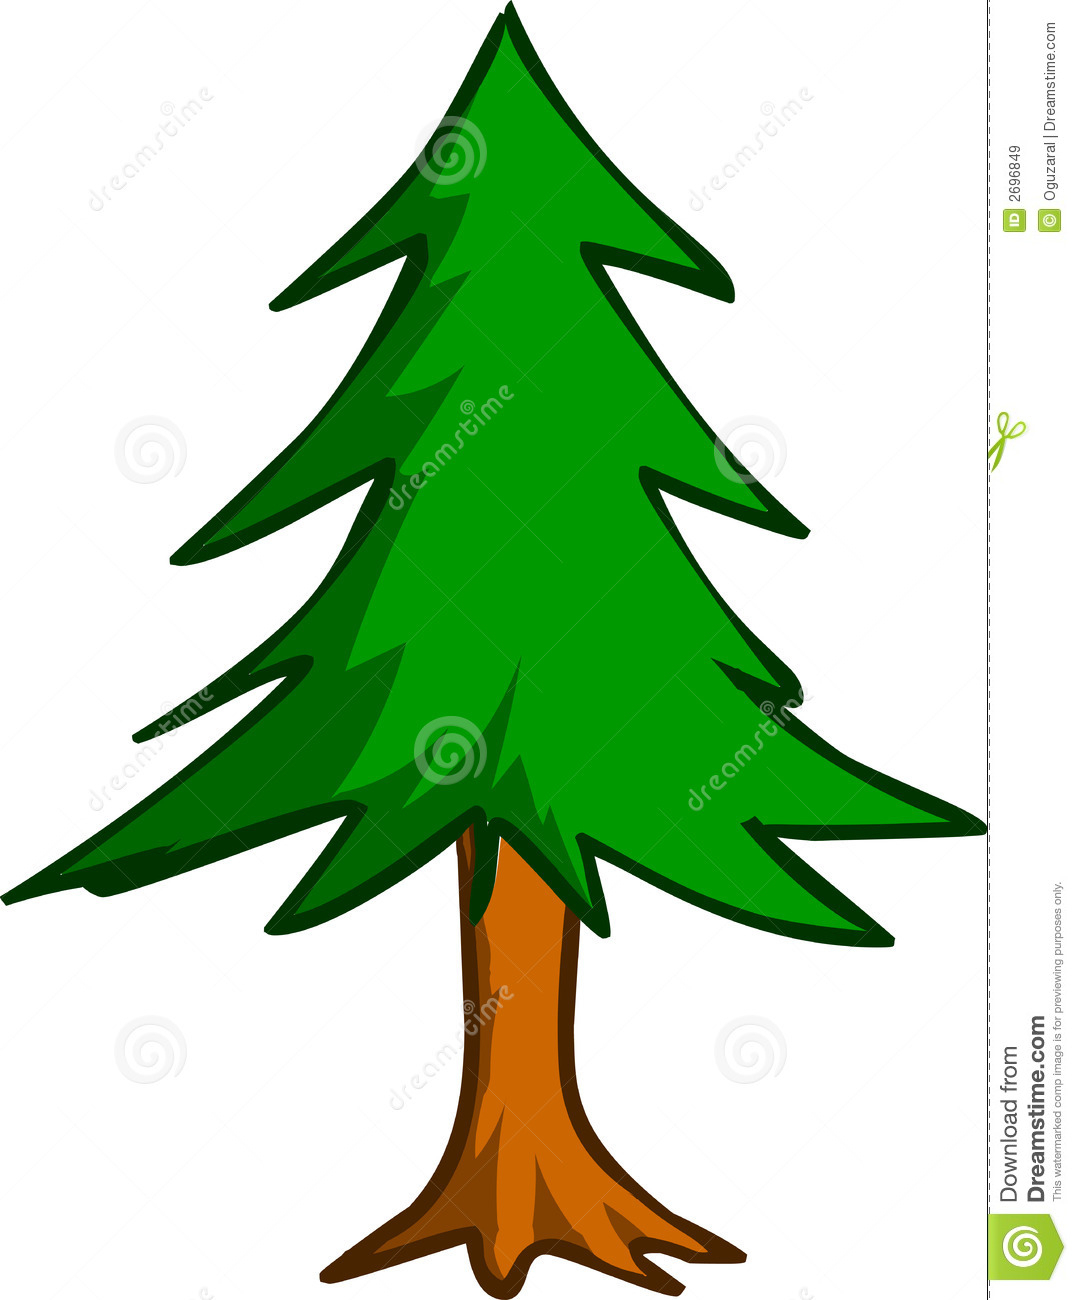 hight resolution of 1077x1300 simple pine tree drawing clipart pine tree